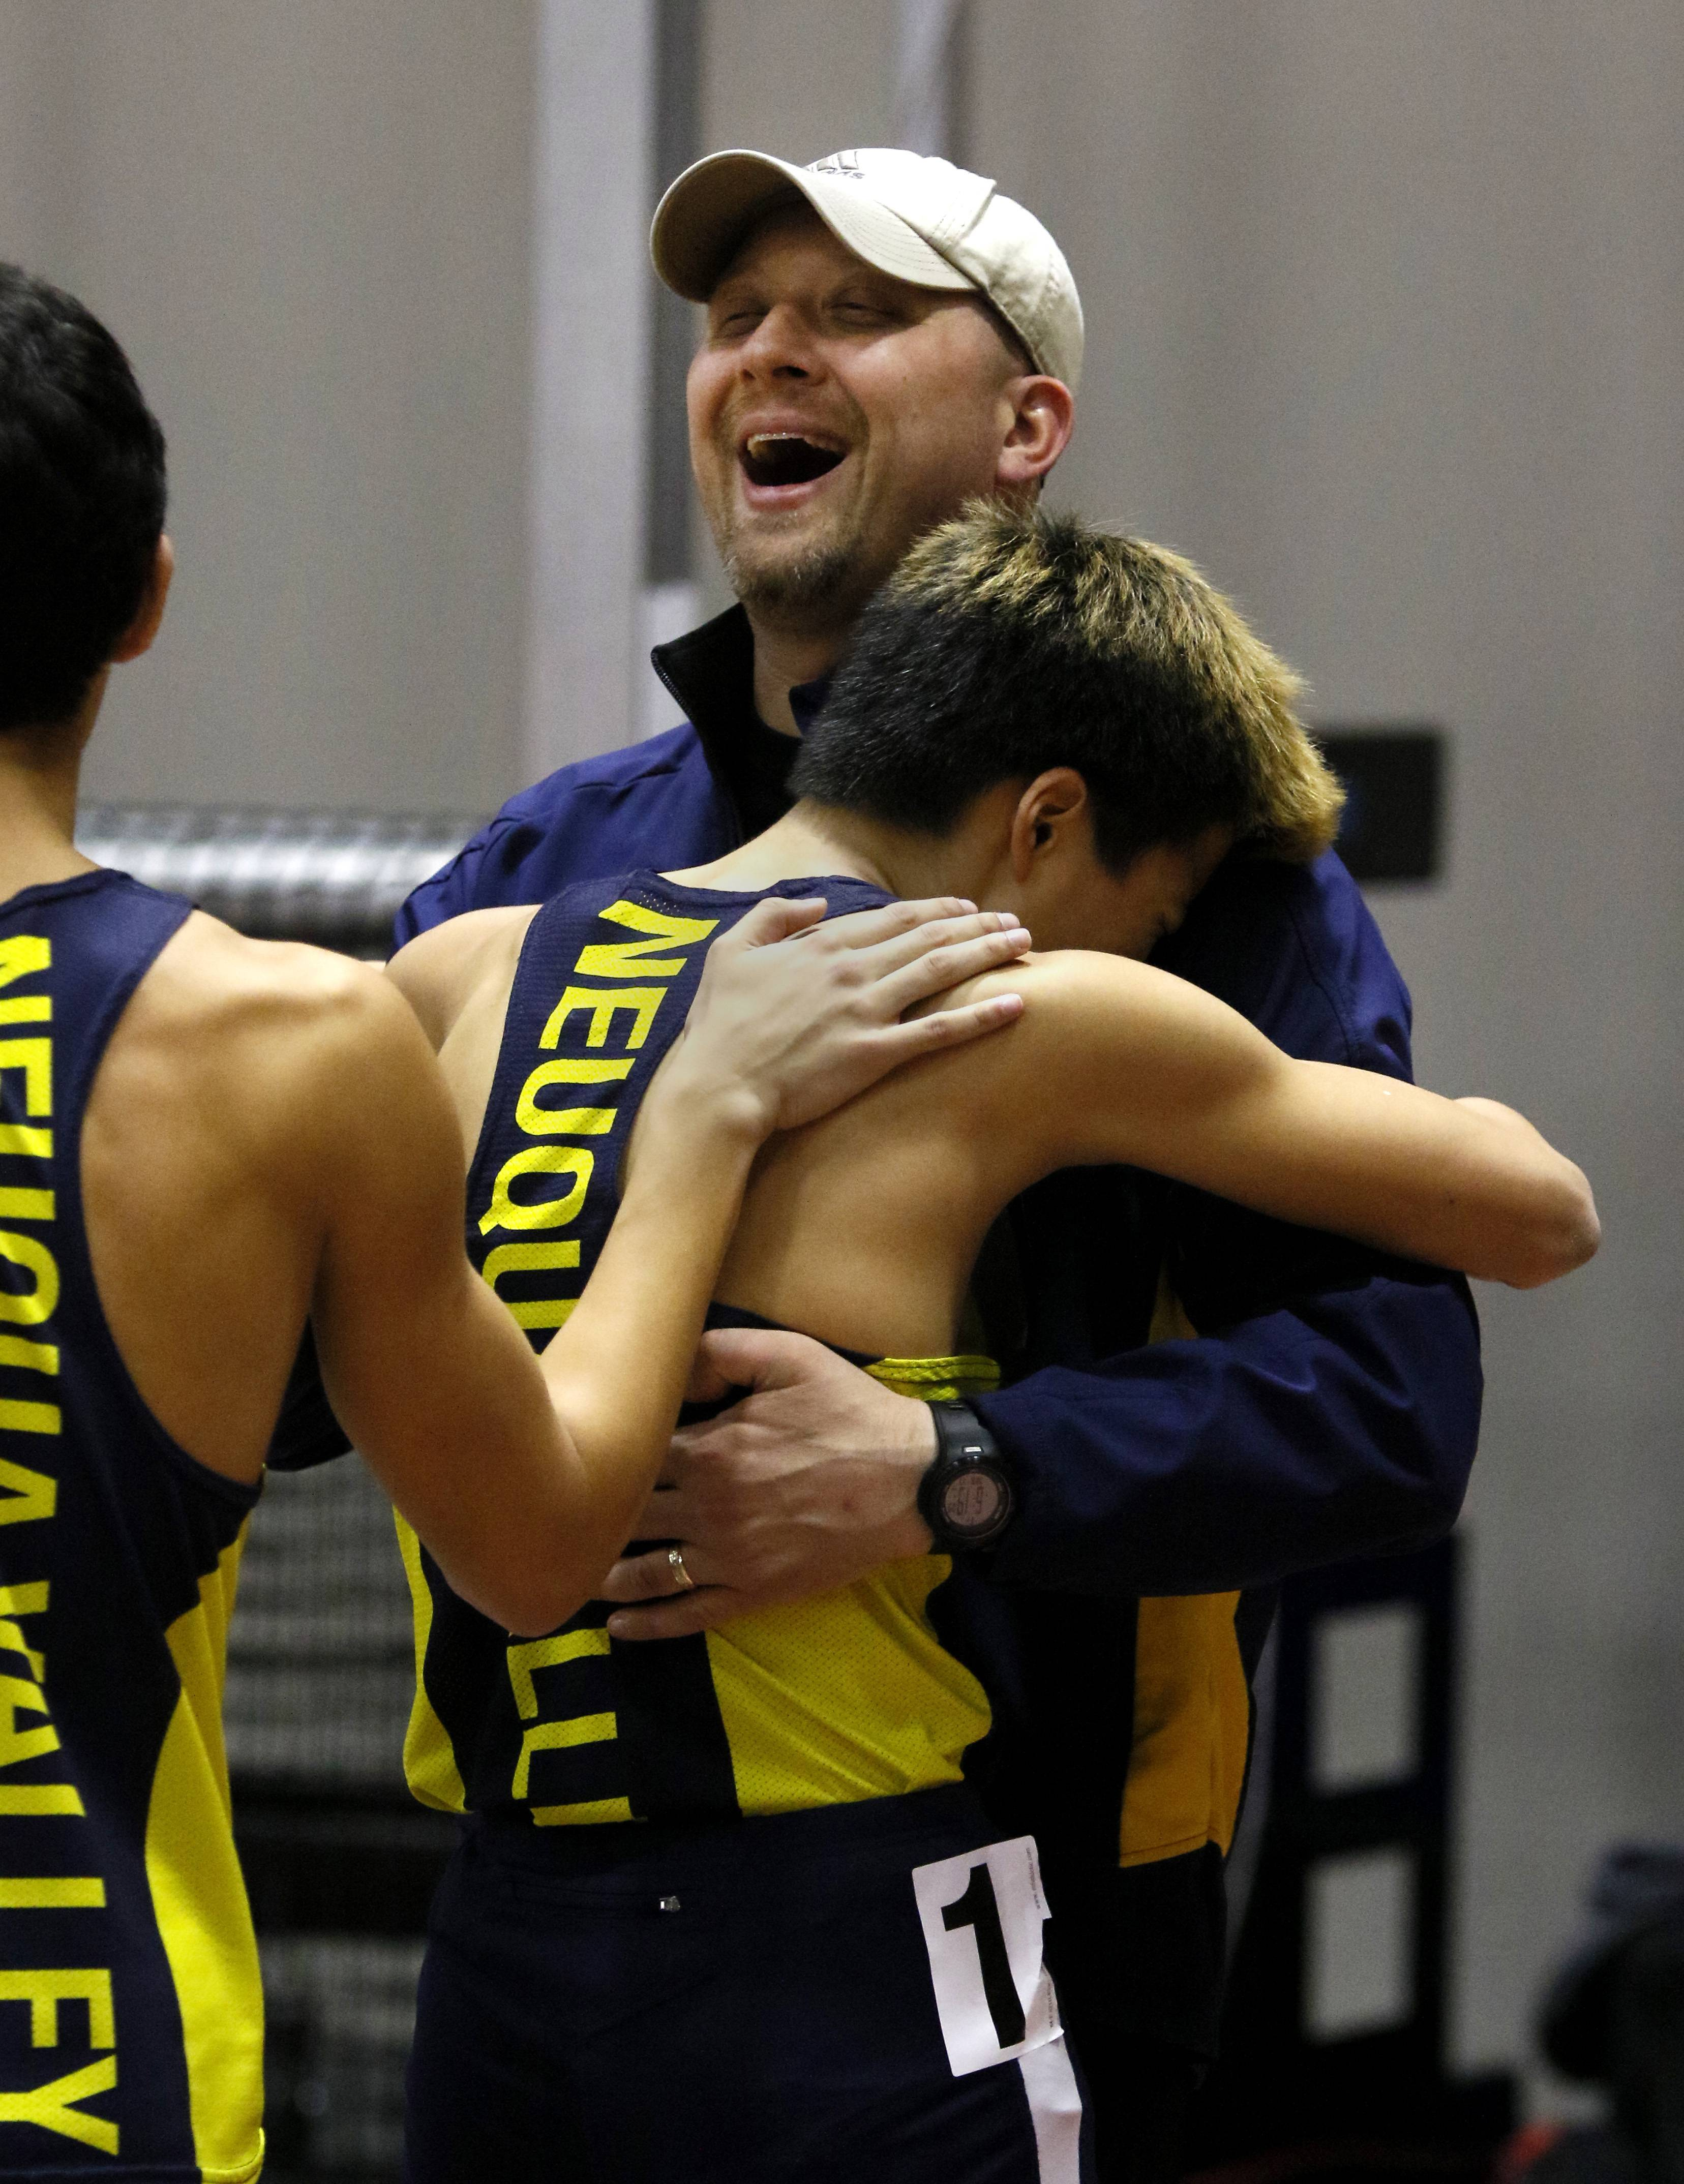 Neuqua Valley's Alan Poe is congratulated after anchoring a first place finish in the 4x800 meter relay at the DuPage Valley Conference boys indoor track meet at North Central College.